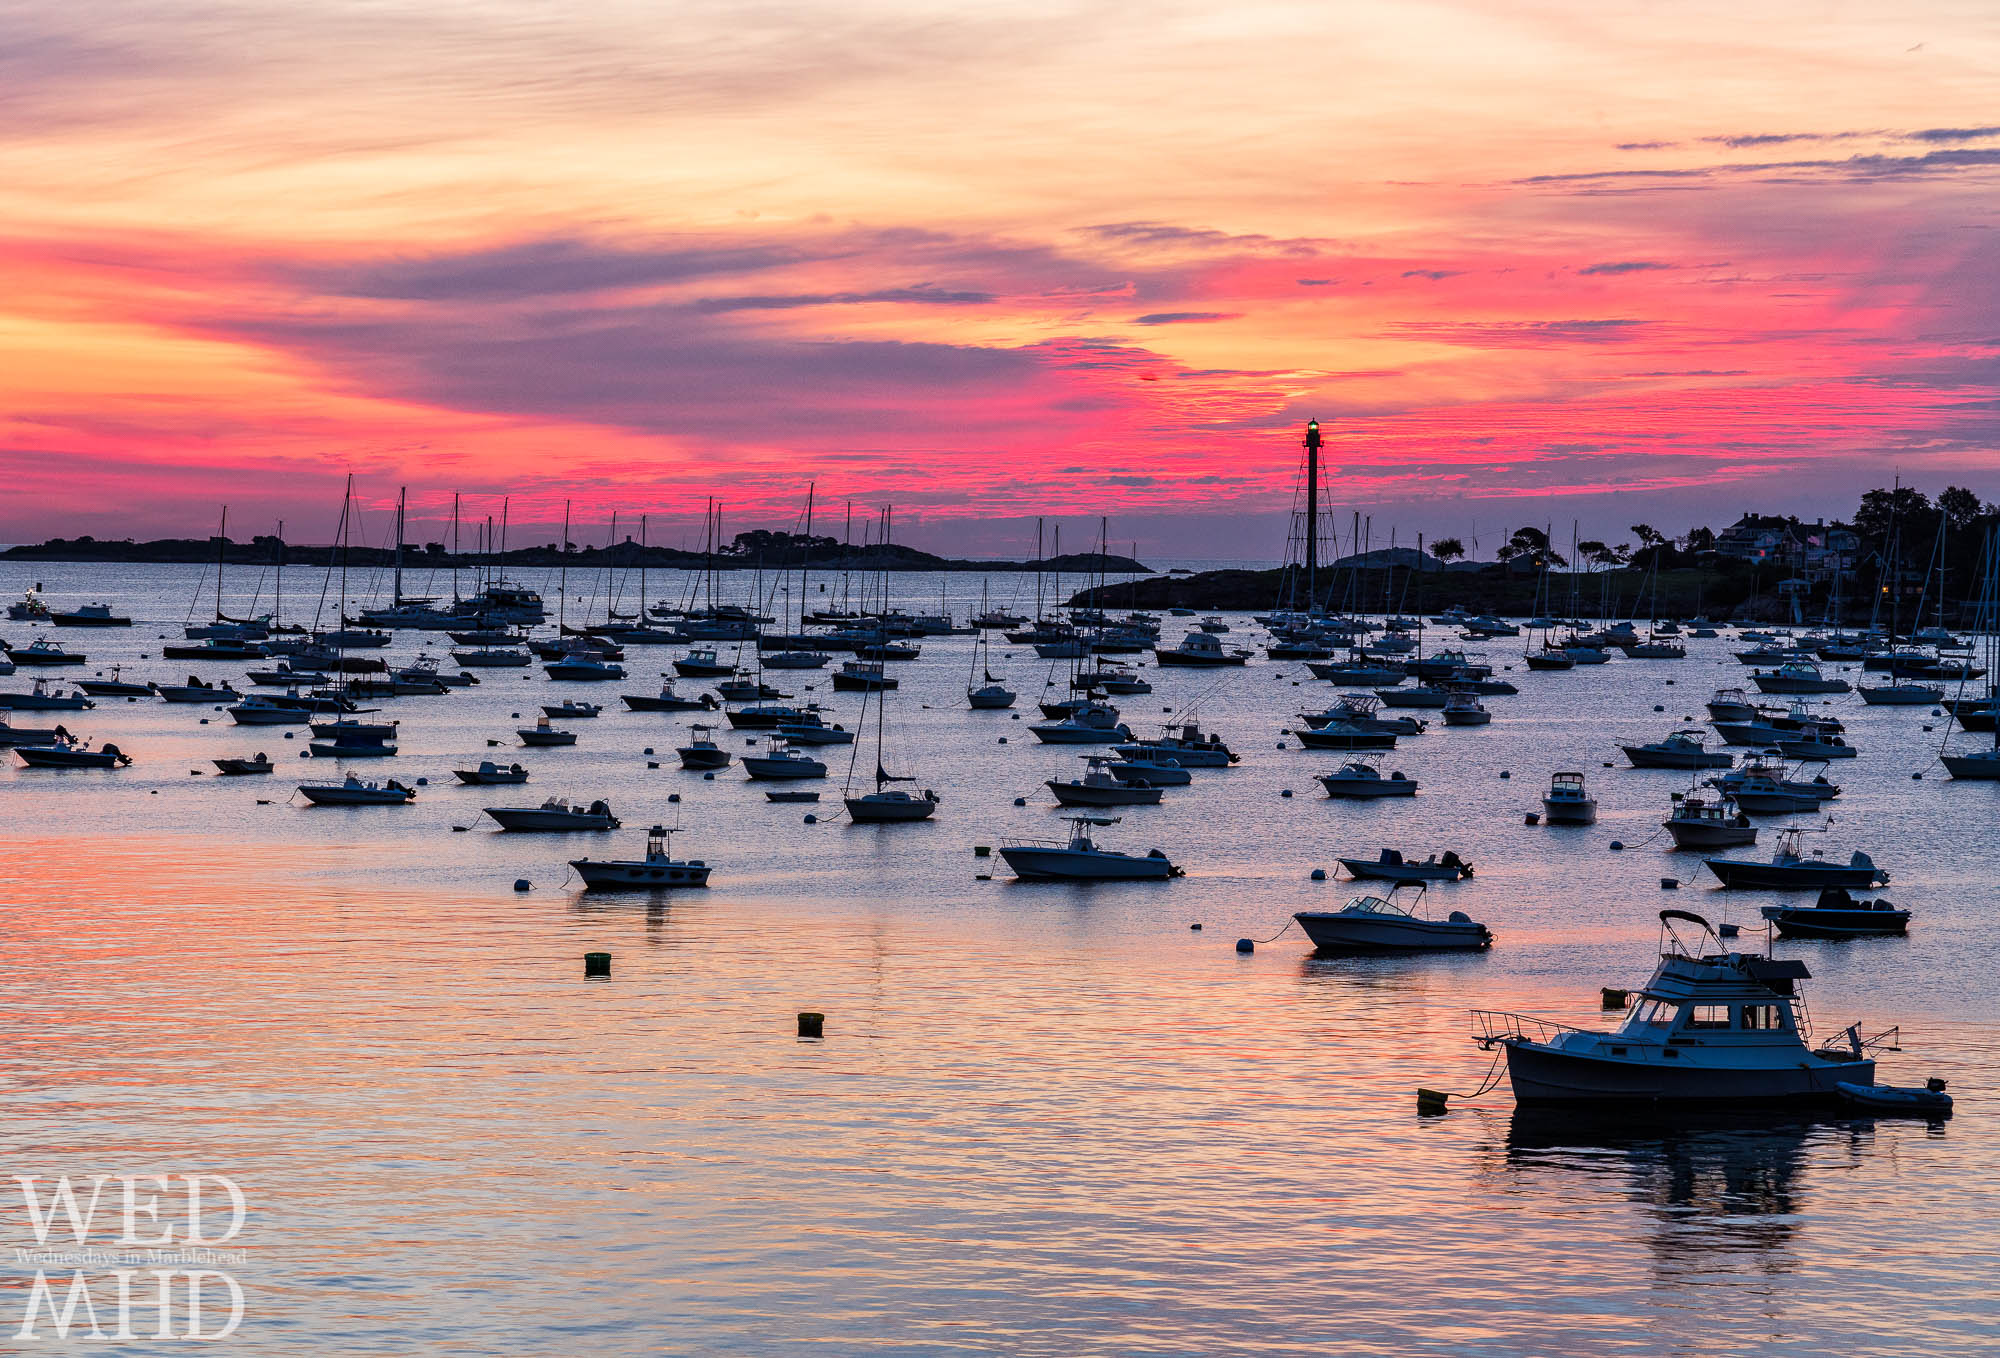 Red sky in morning gives a clue of a storm coming to dump inches of rain on Marblehead